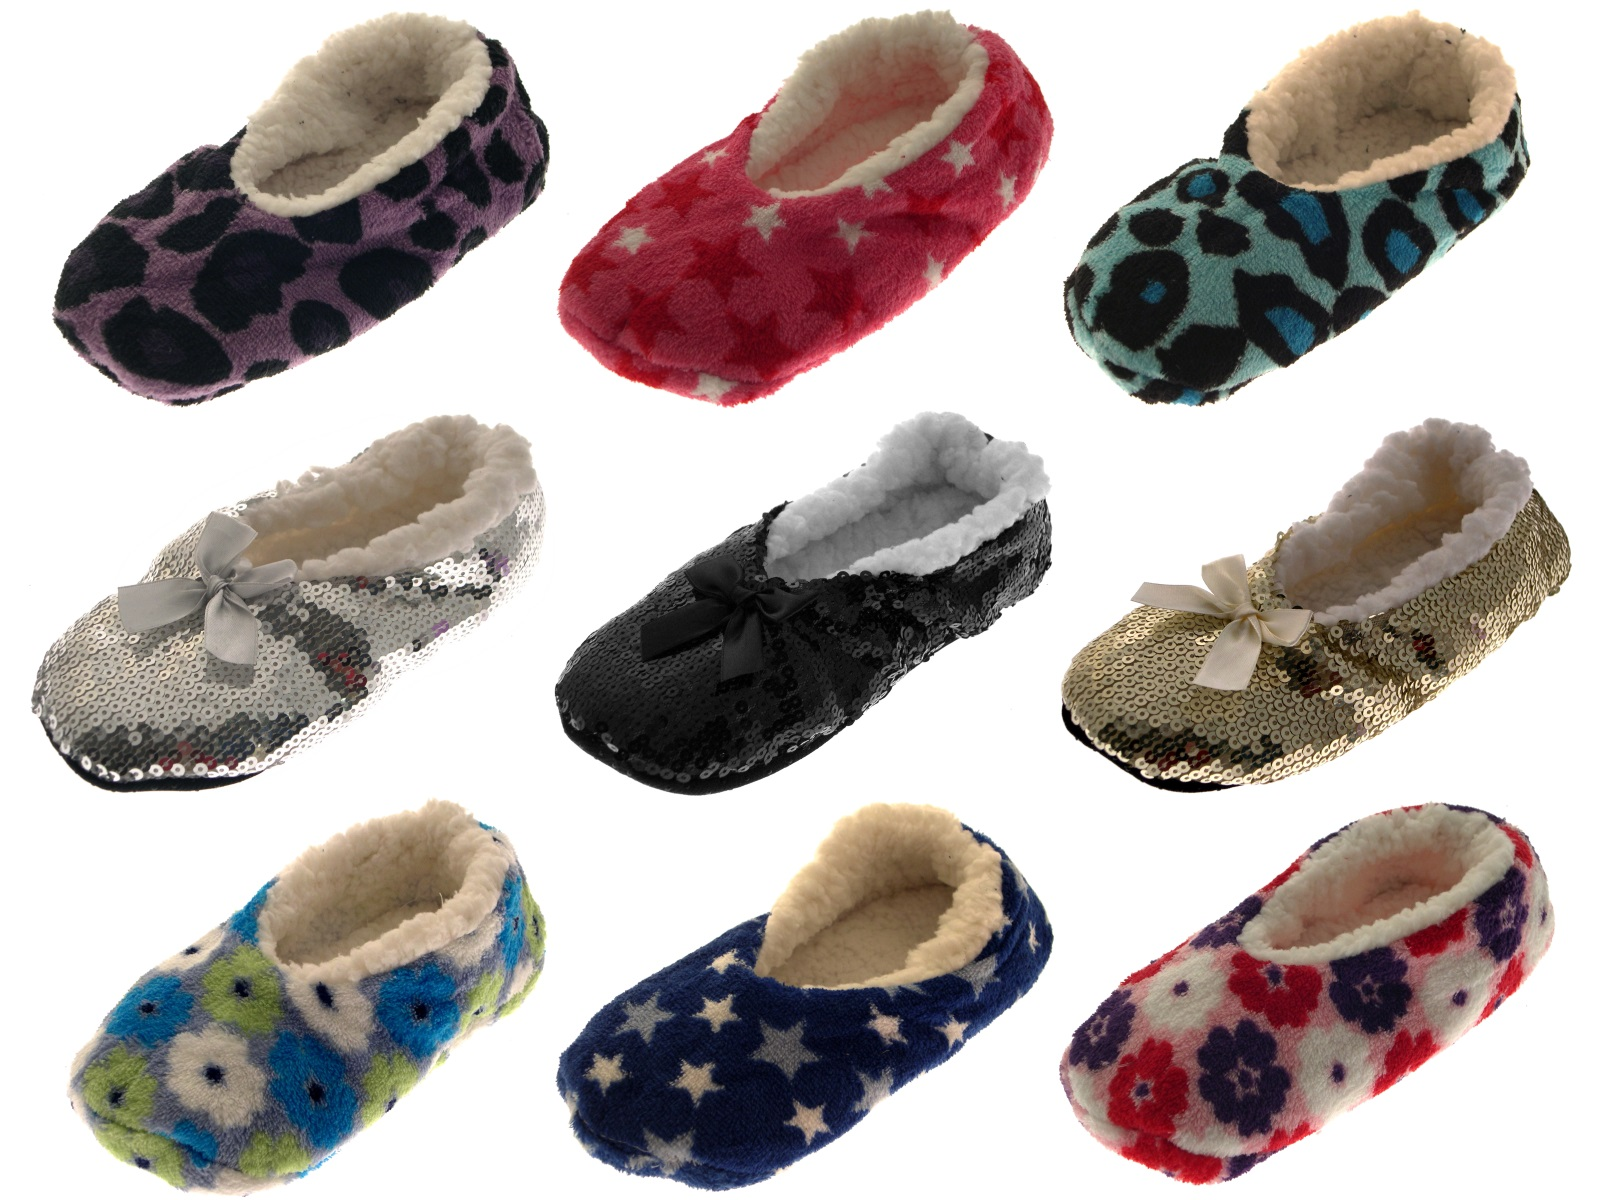 Shop for and buy womens slipper socks online at Macy's. Find womens slipper socks at Macy's.